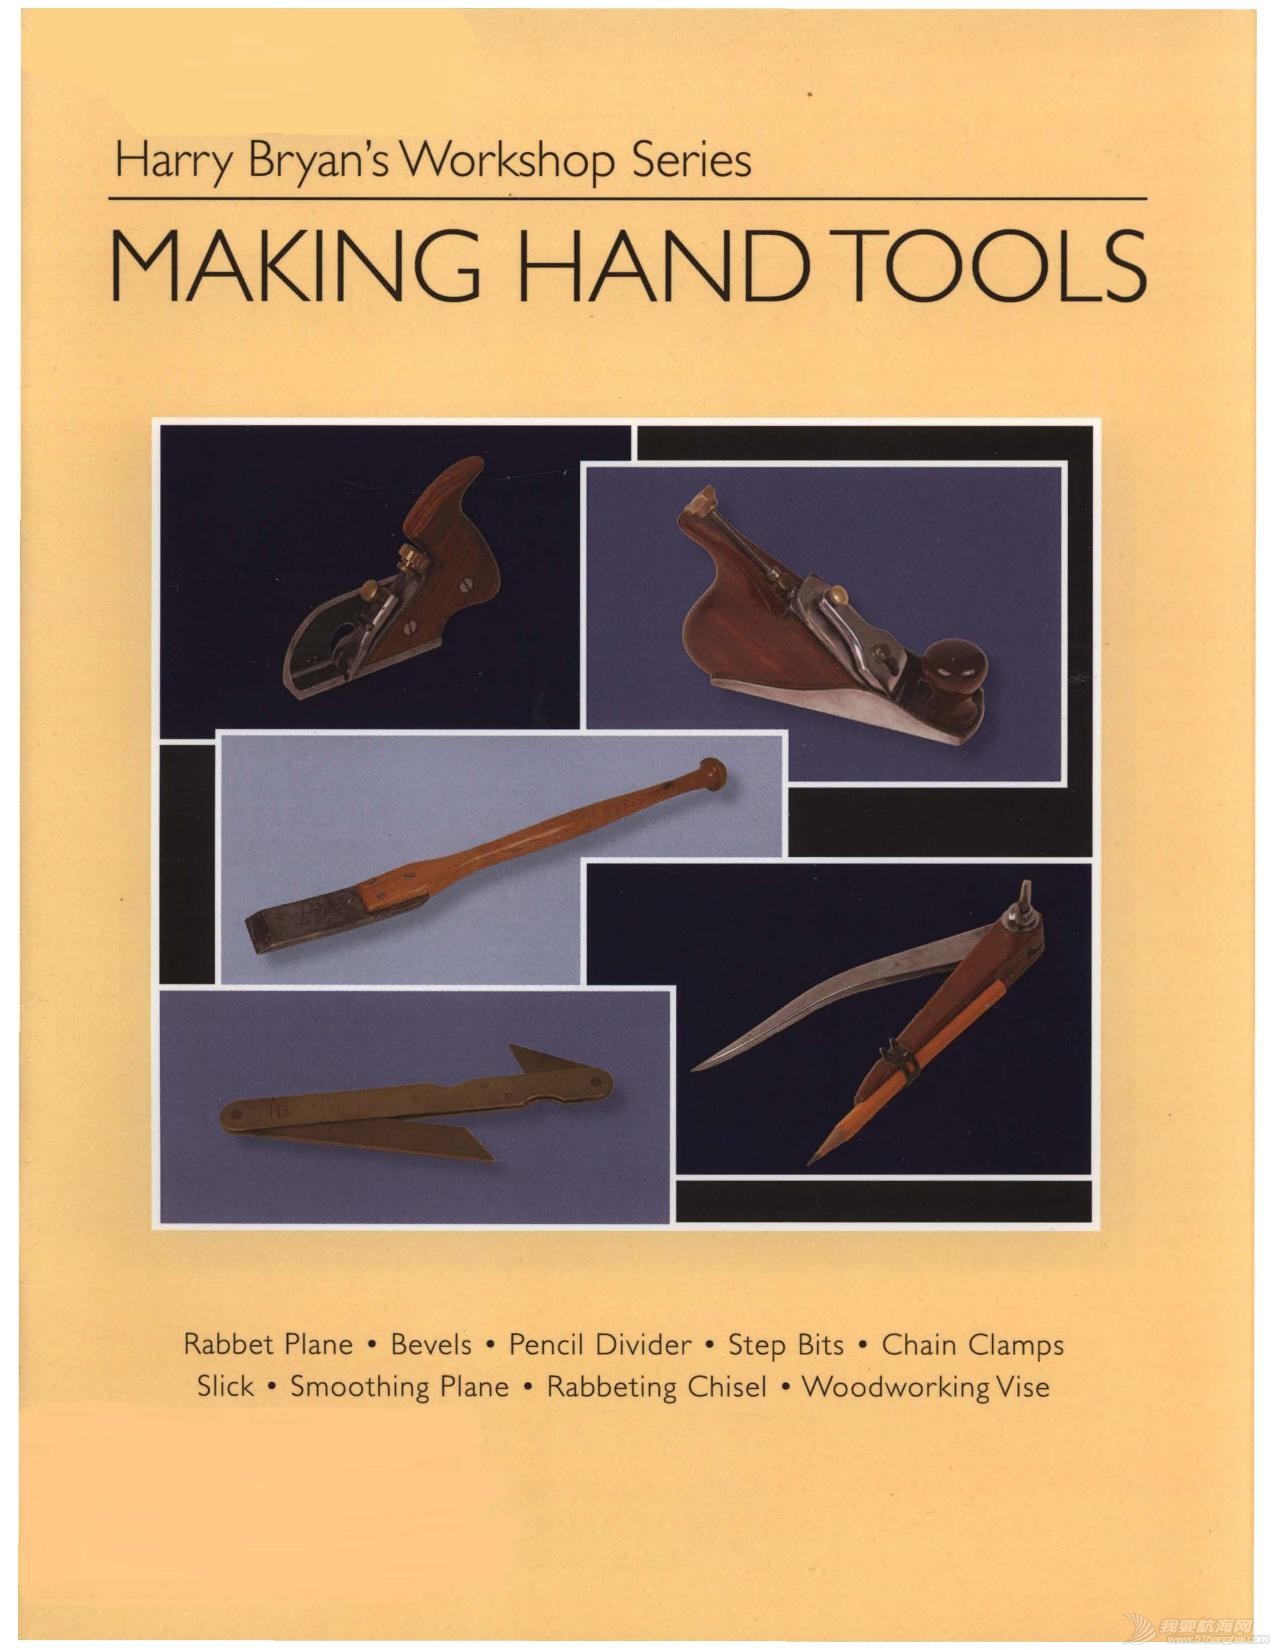 Harry Bryan- Making Hand Tools 1-page-001.jpg